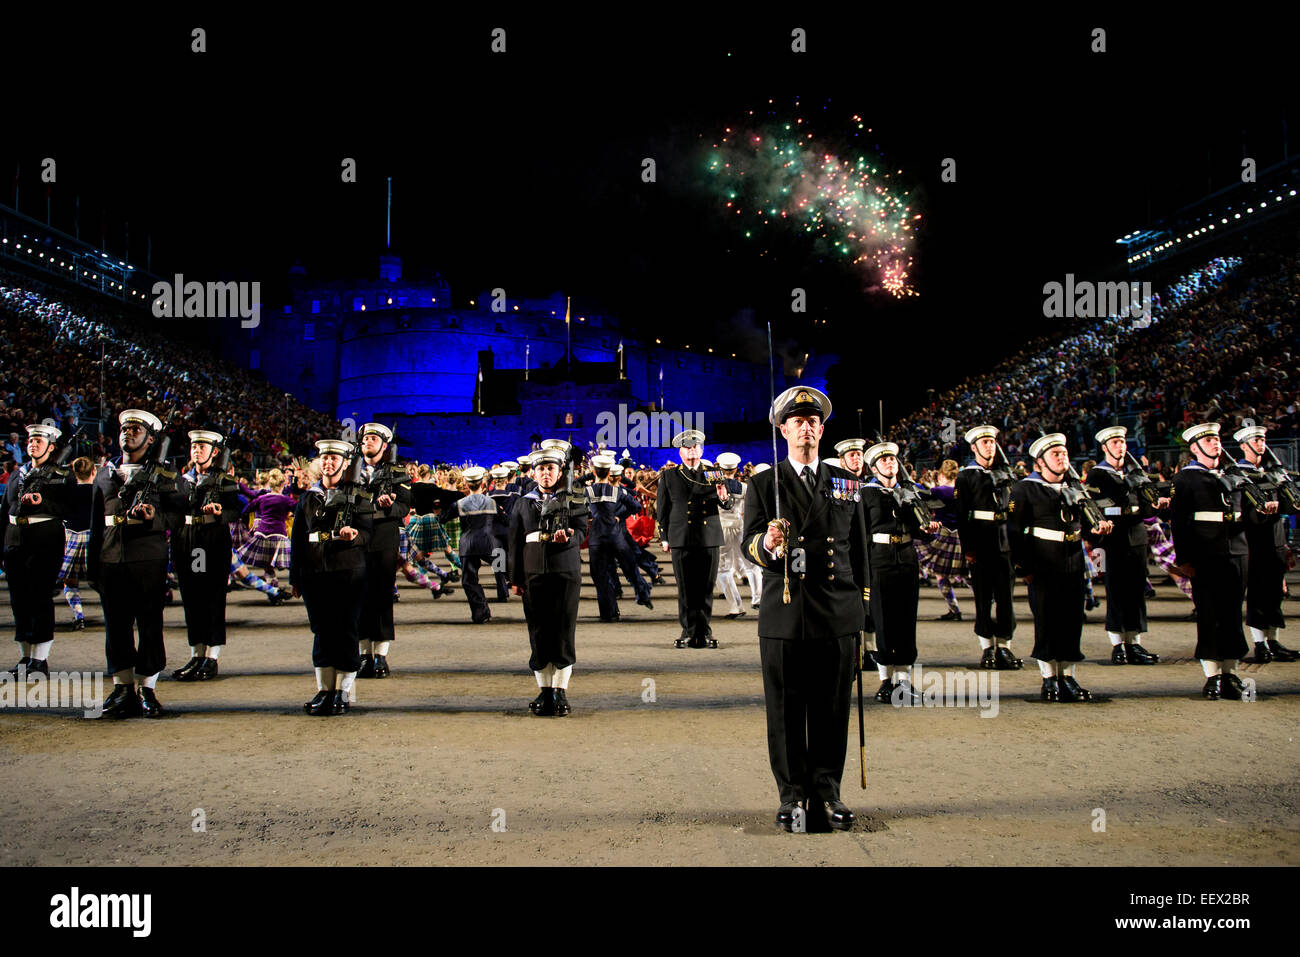 British royal marines stock photos british royal marines for Royal edinburgh military tattoo